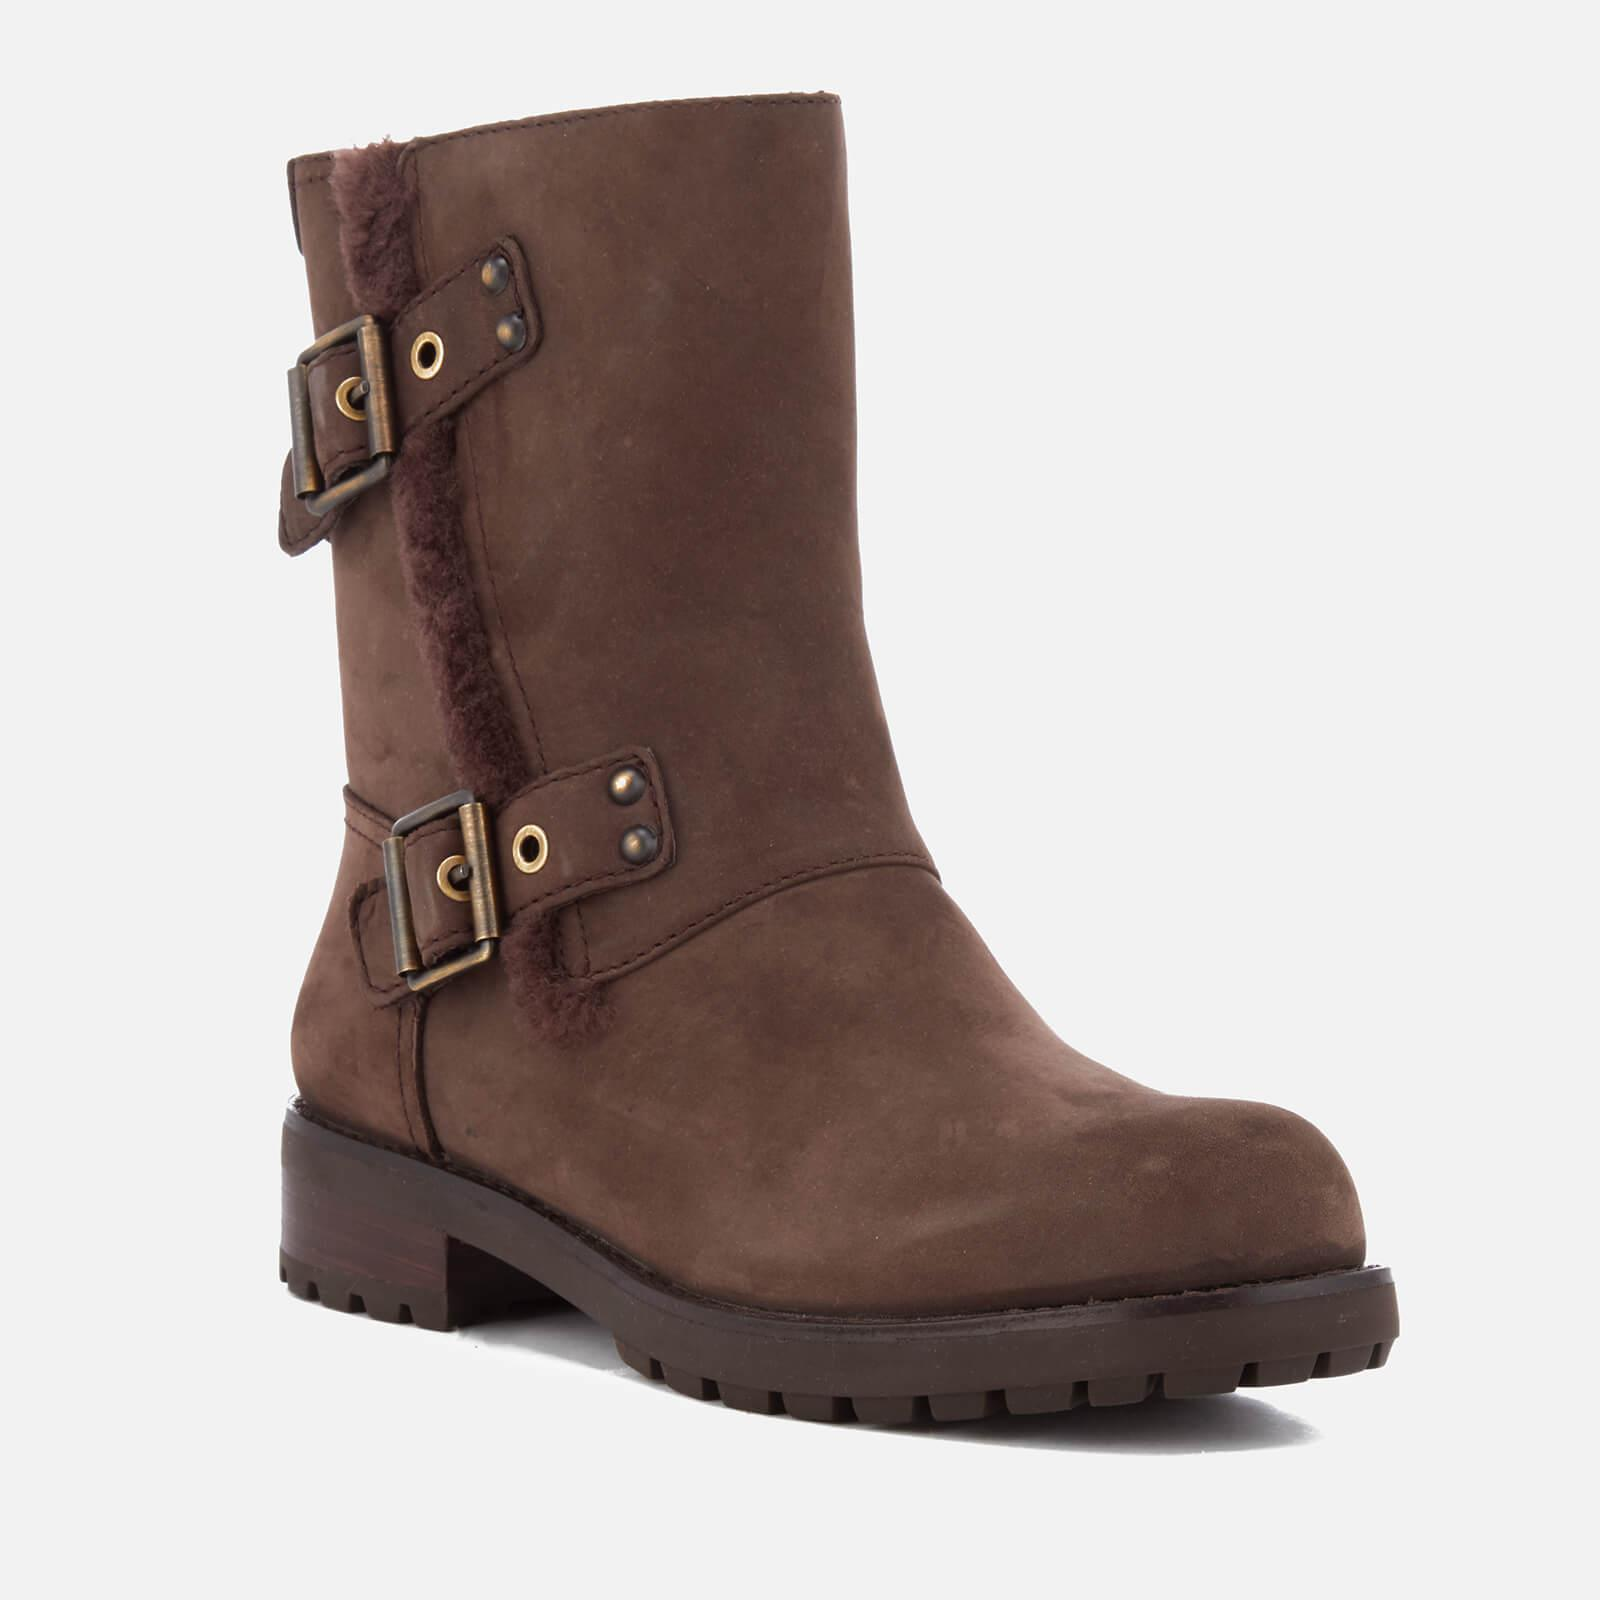 d5603492828 UGG Women's Niels Leather Biker Boots in Brown - Lyst